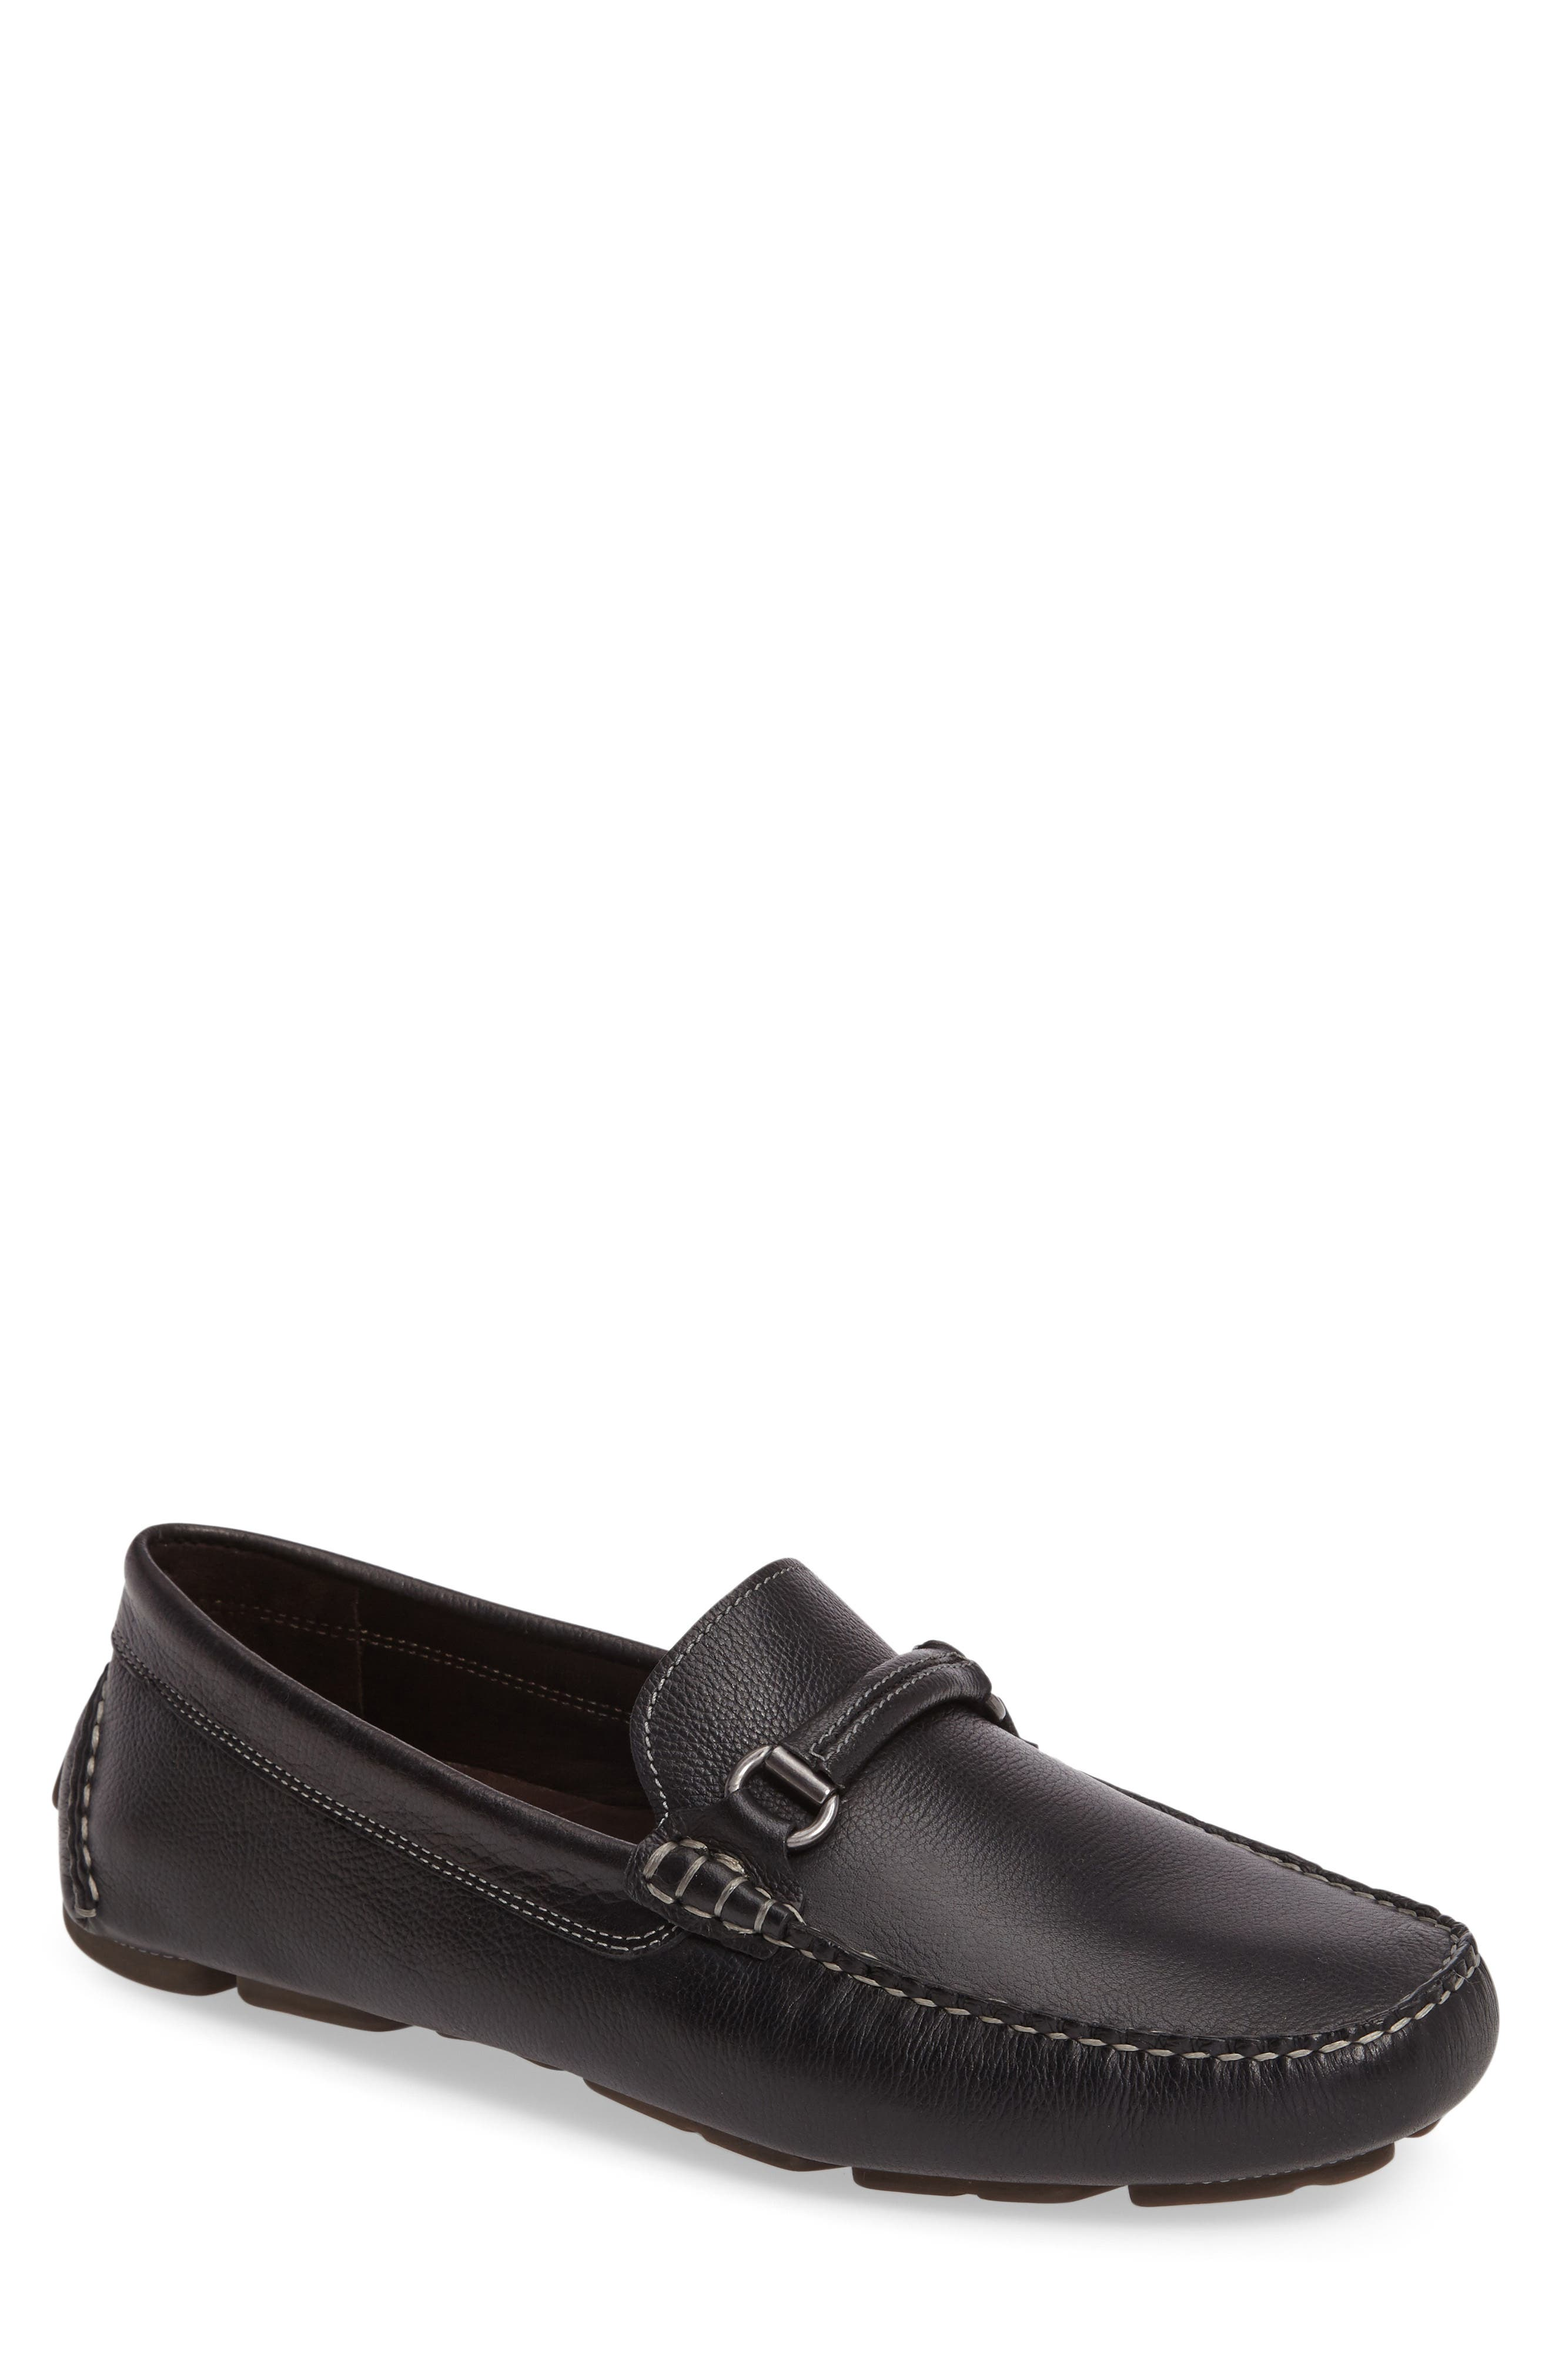 JOHNSTON & MURPHY Gibson Bit Driving Loafer, Main, color, BLACK LEATHER